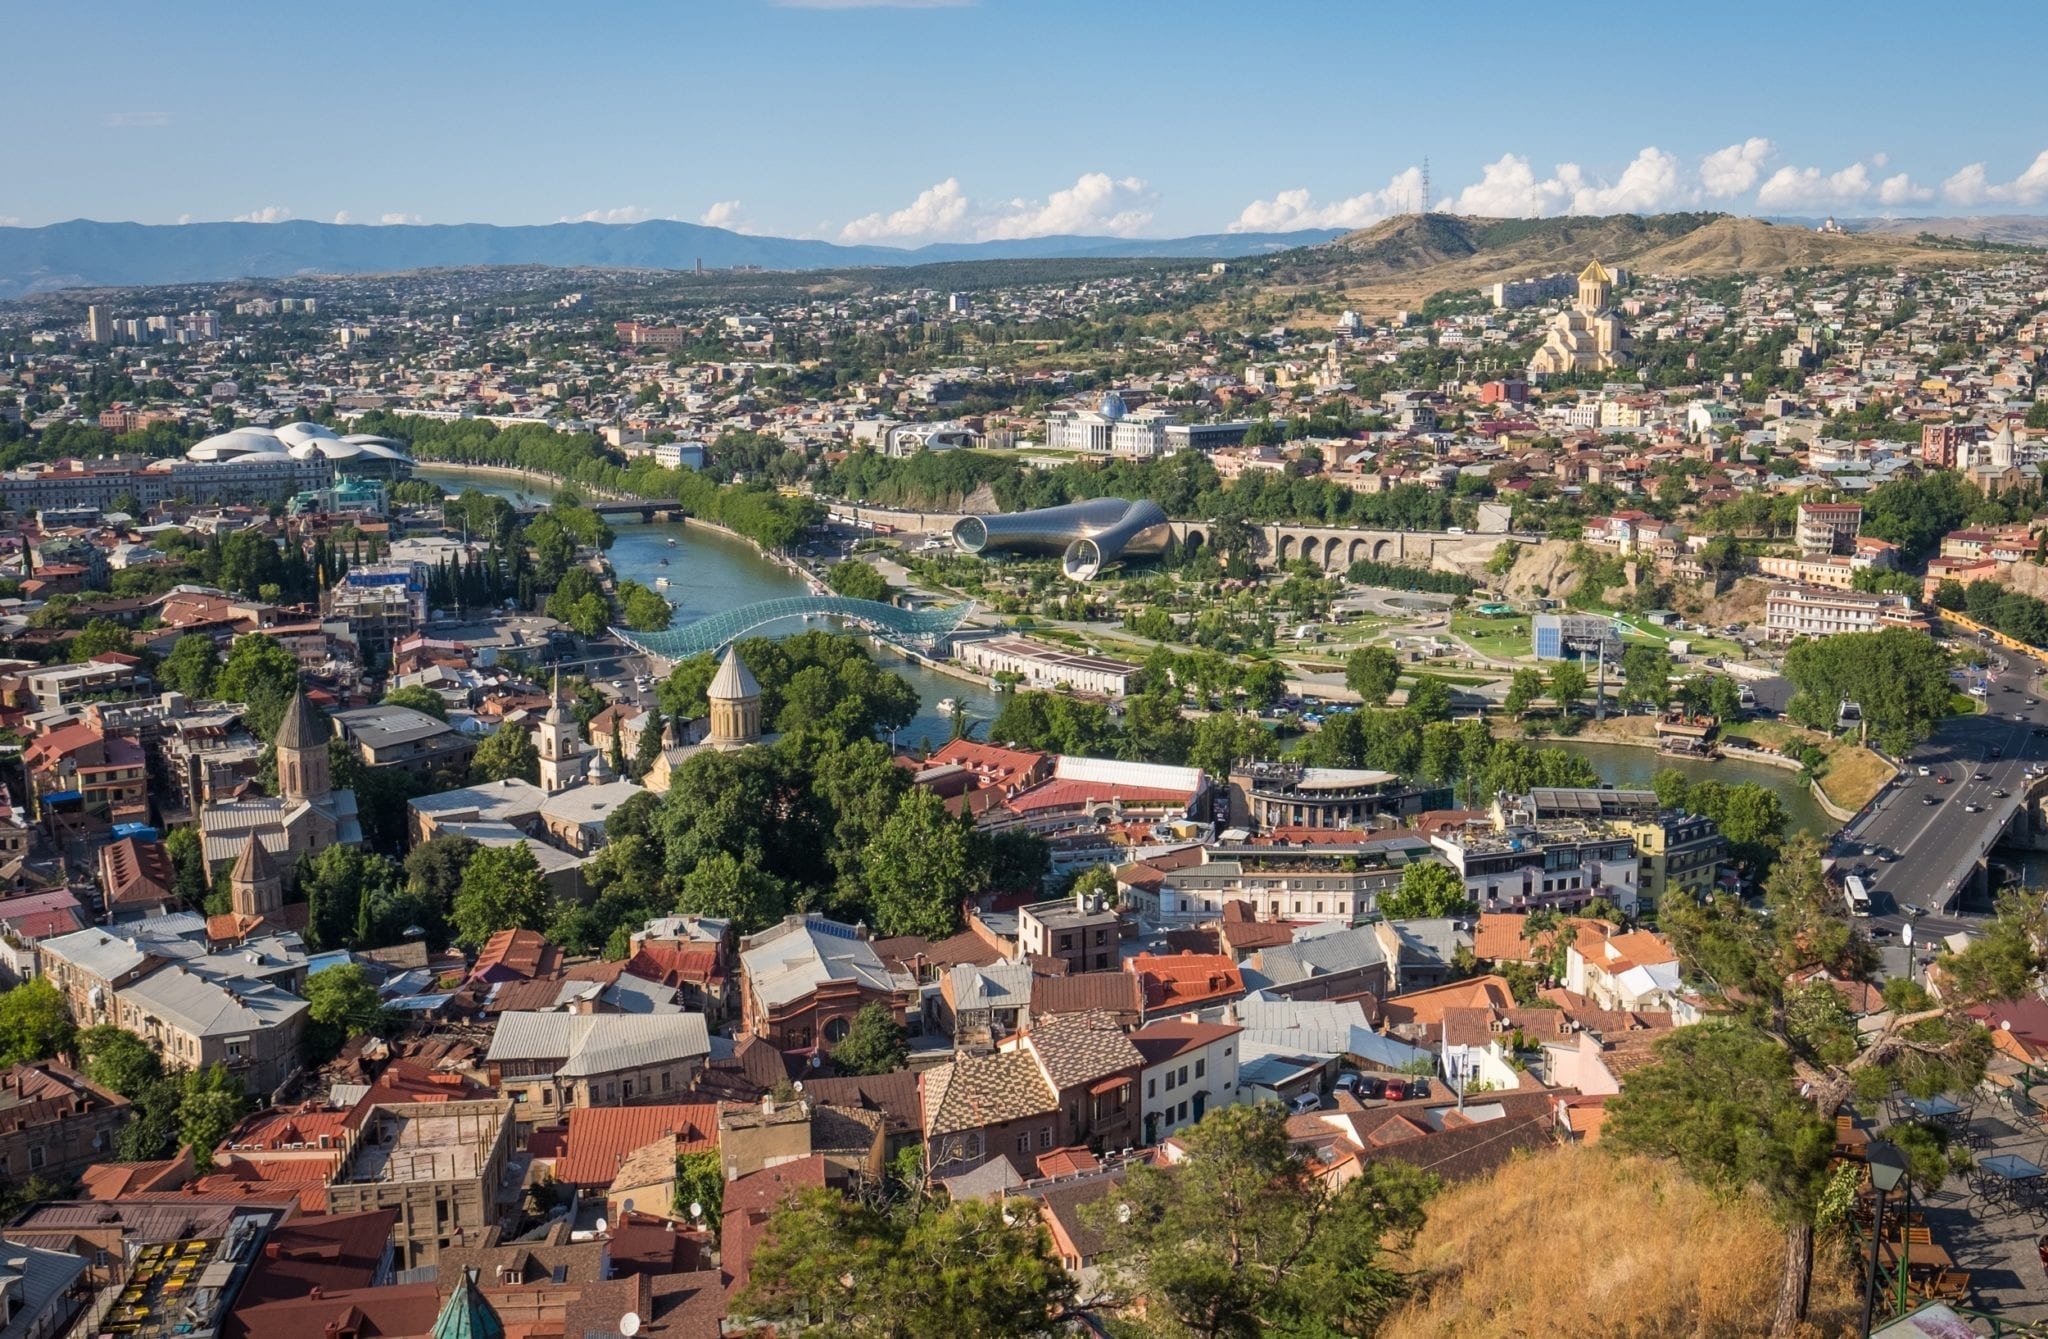 A gorgeous view of Tbilisi underneath a blue sky, buildings with orange roofs, the green river snaking through the city, a few of the modern glassy buildings poking up in the photo.